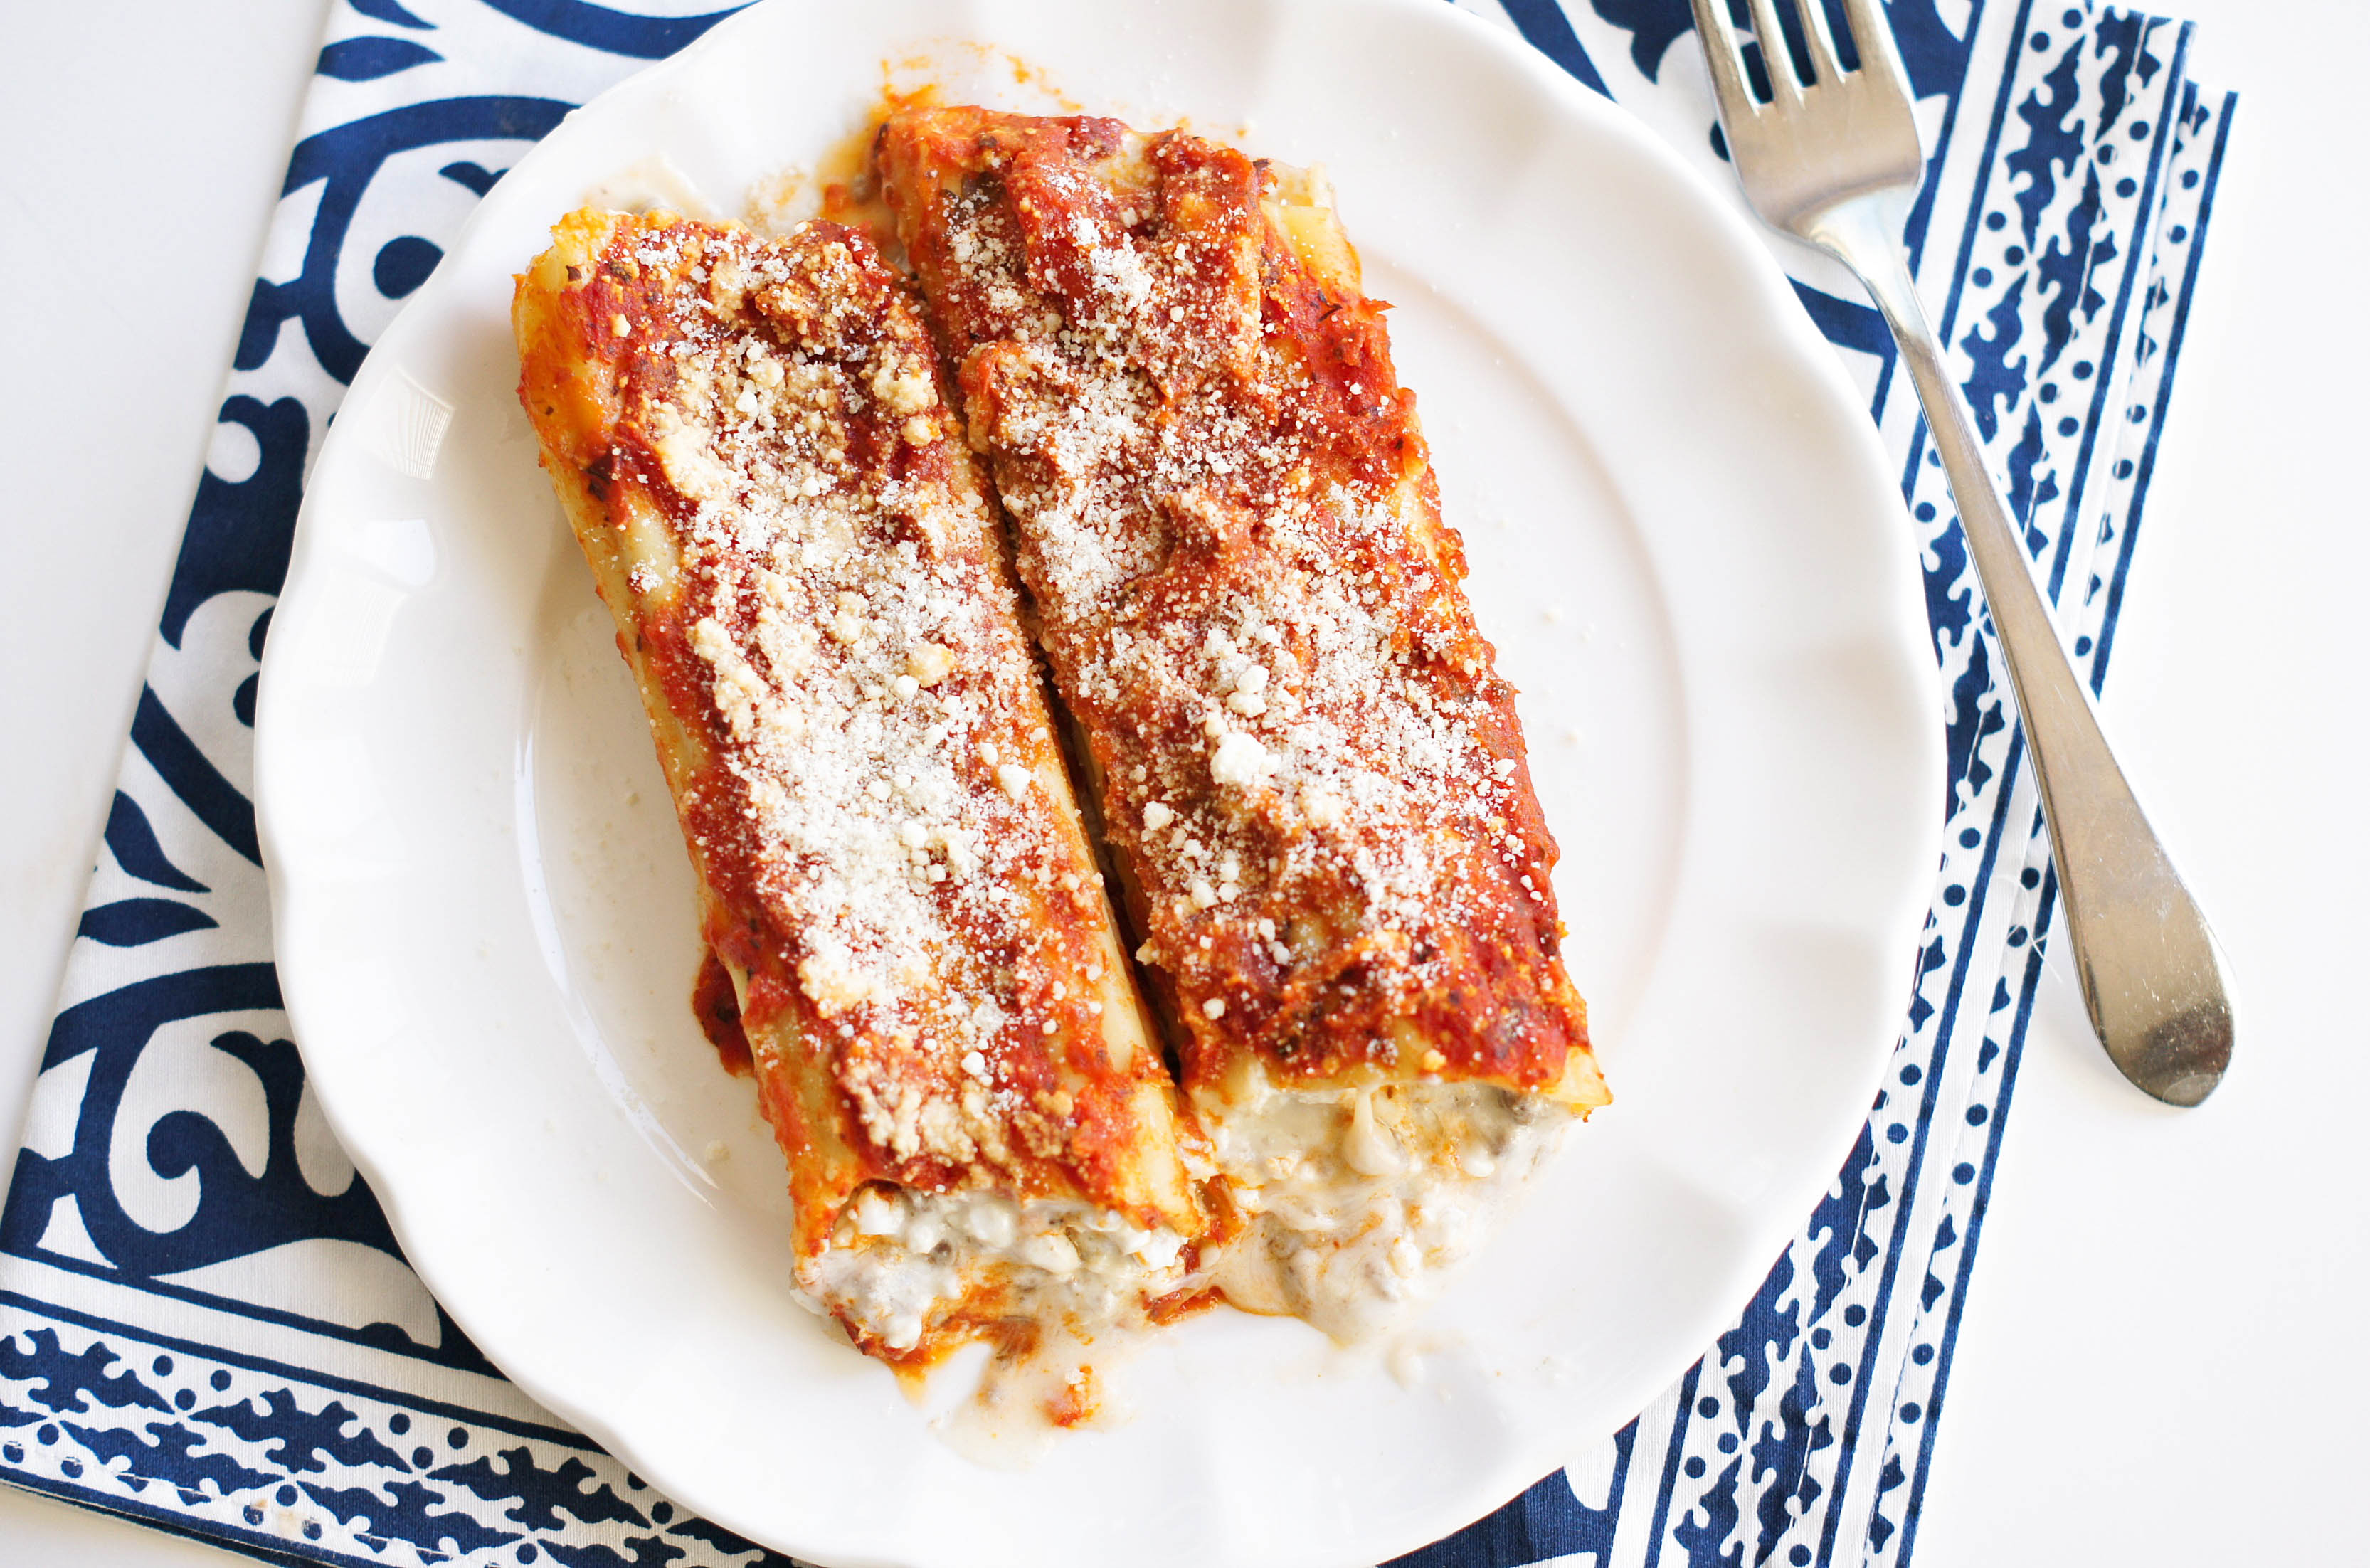 Manicotti on a plate